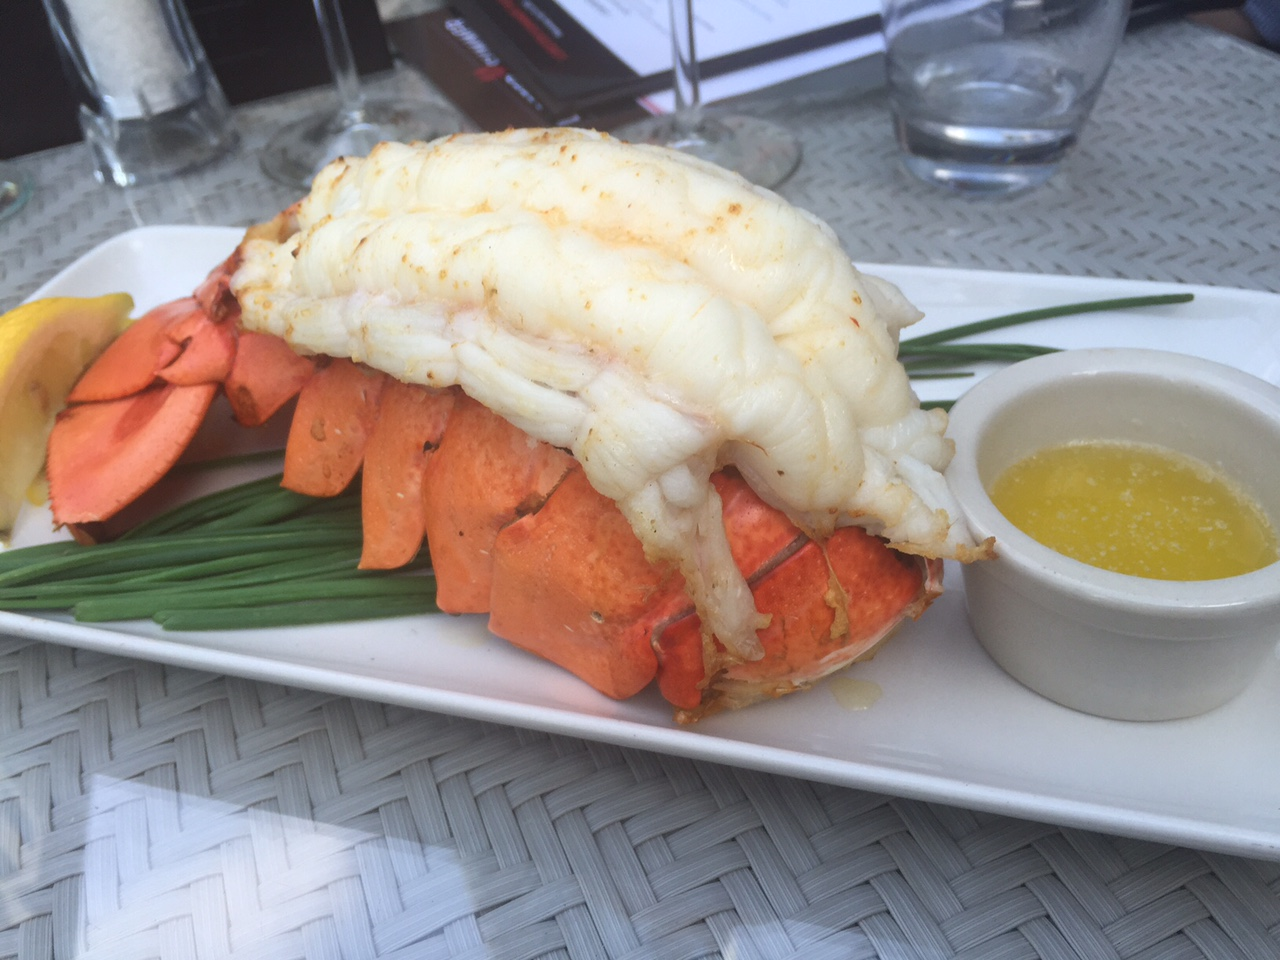 Tasting the new Summer Lobster Menu at The Keg Steakhouse